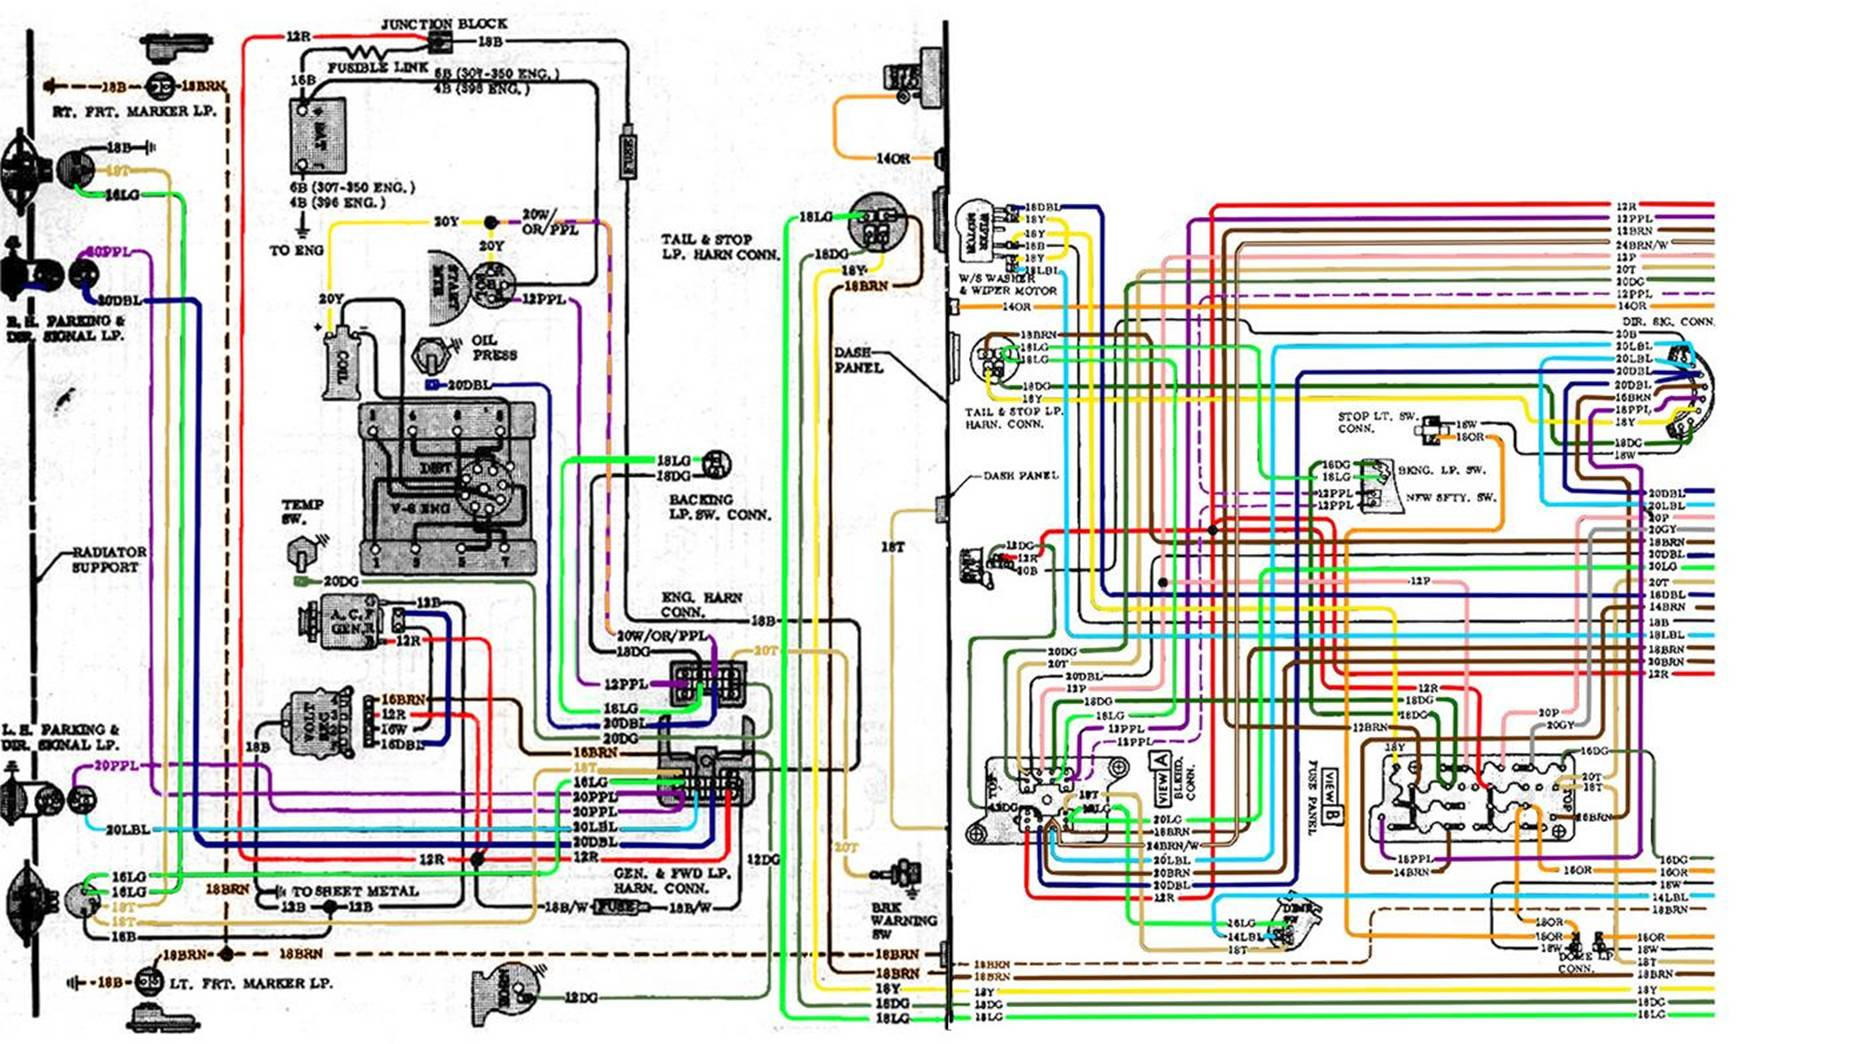 hight resolution of 67 72 chevy wiring diagram rh outintheshop com 12 volt starter wiring diagram bulldog remote starter